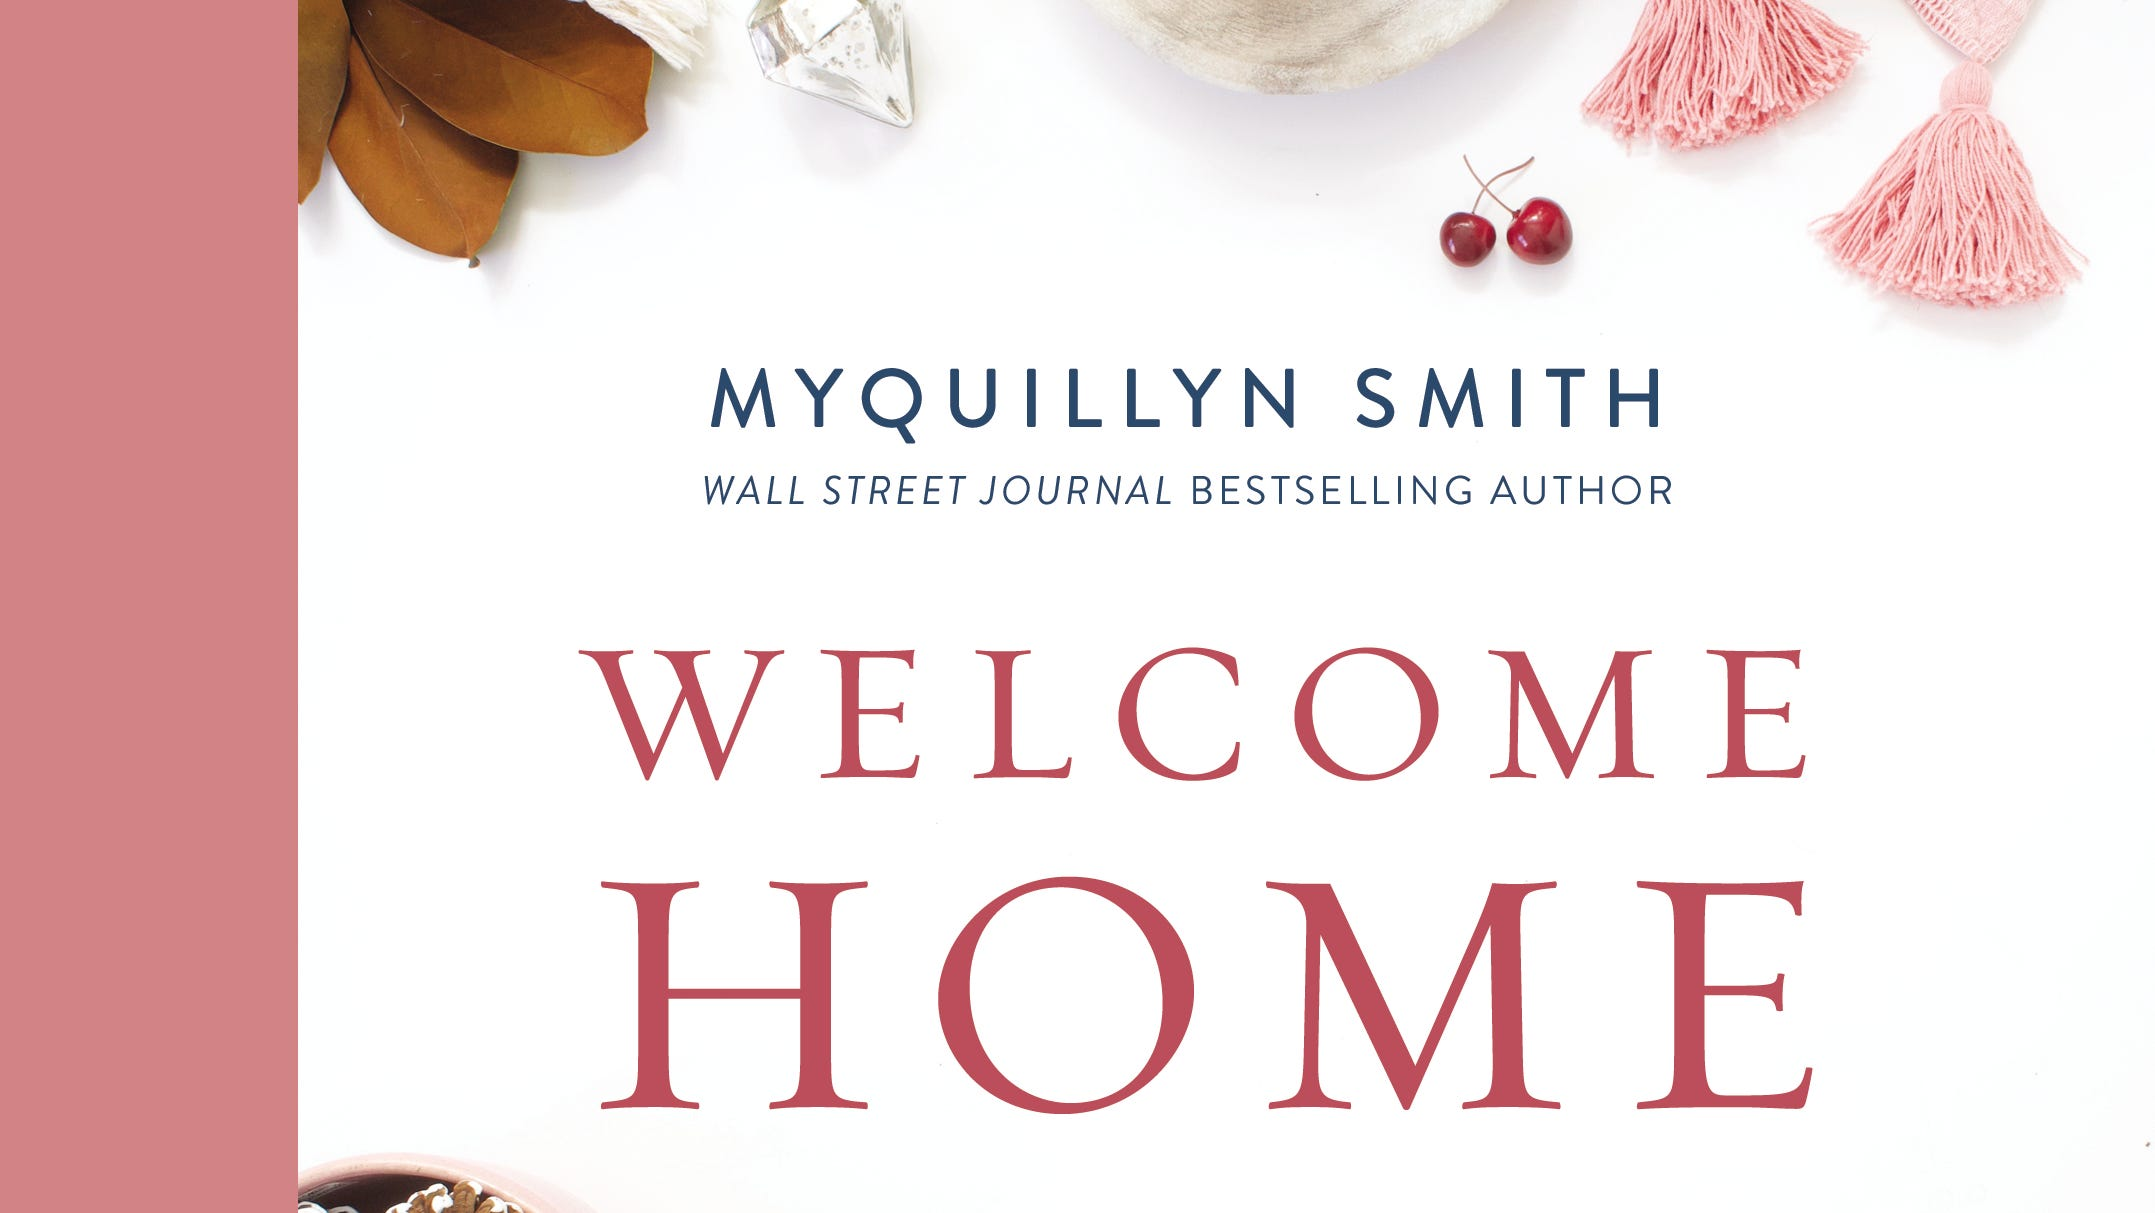 Myquillyn Smith is the voice behind The Nester blog, and author of three books, including her newest due out Sept. 15, Welcome Home: A Cozy Minimalist Guide to Decorating and Hosting All Year Round,  ZONDERVAN PUBLISHING, HARDCOVER $26.99